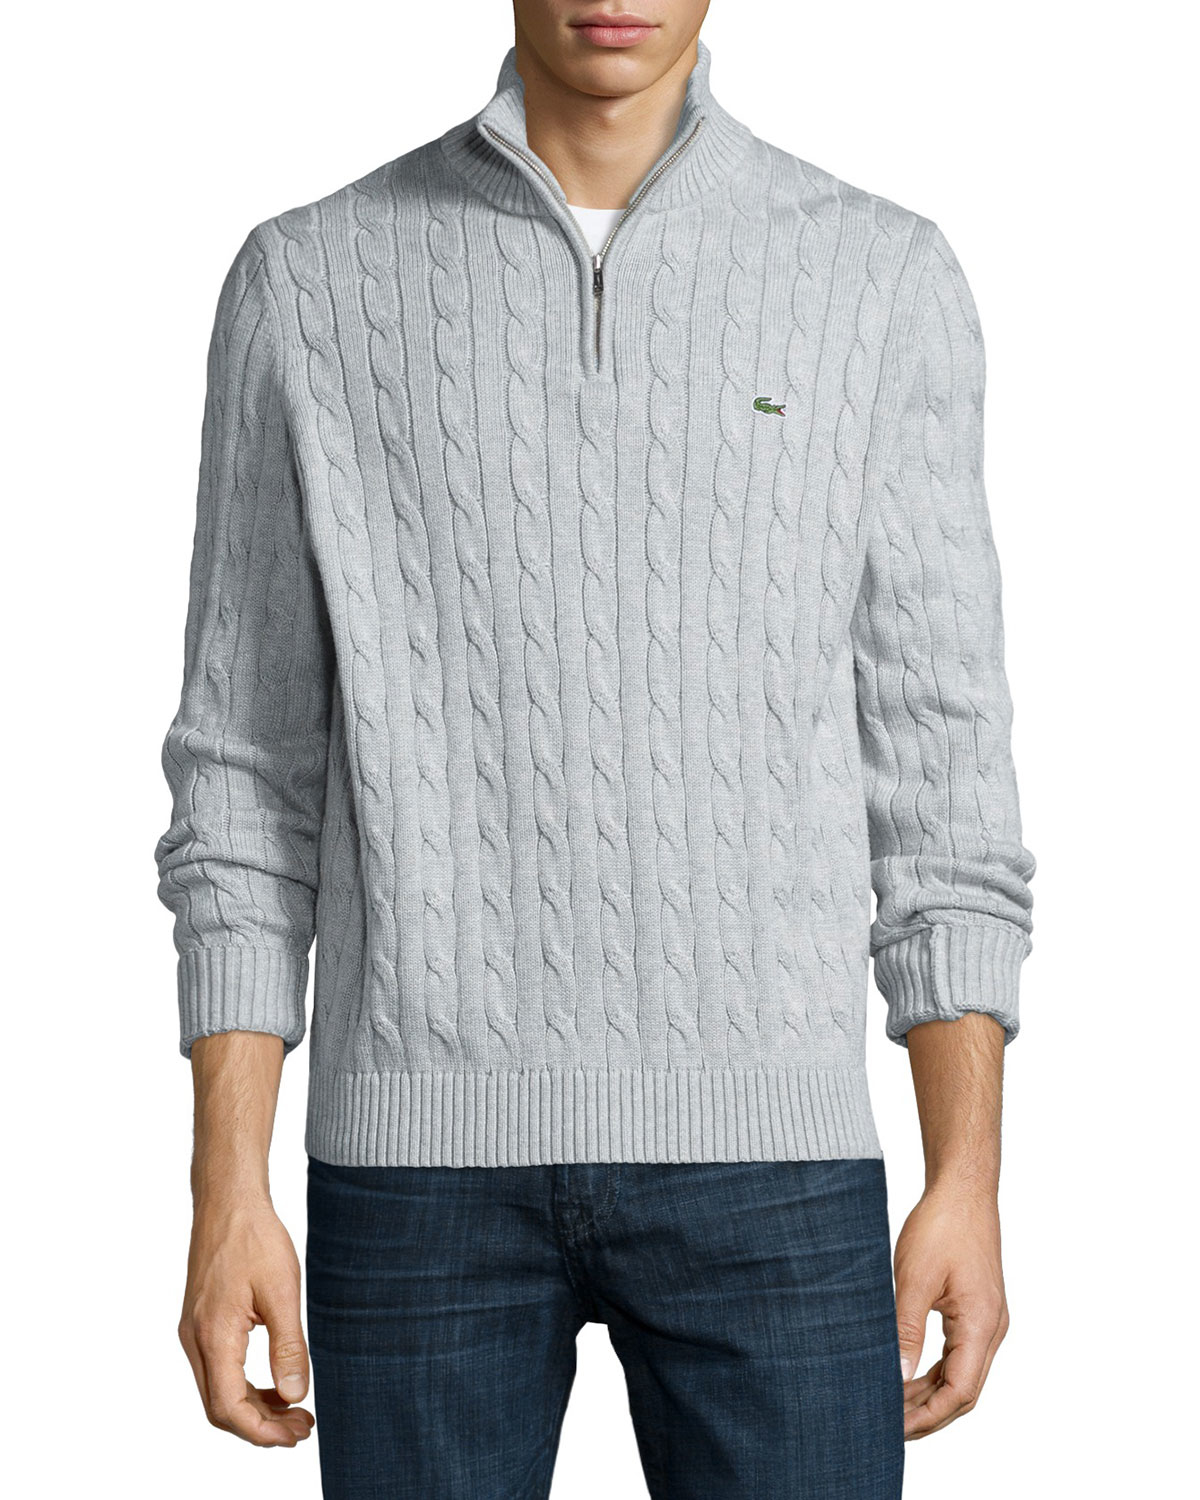 Knitting Patterns For Mens Half Sweaters : Lacoste Cable-knit Half-zip Knit Sweater in Gray for Men ...